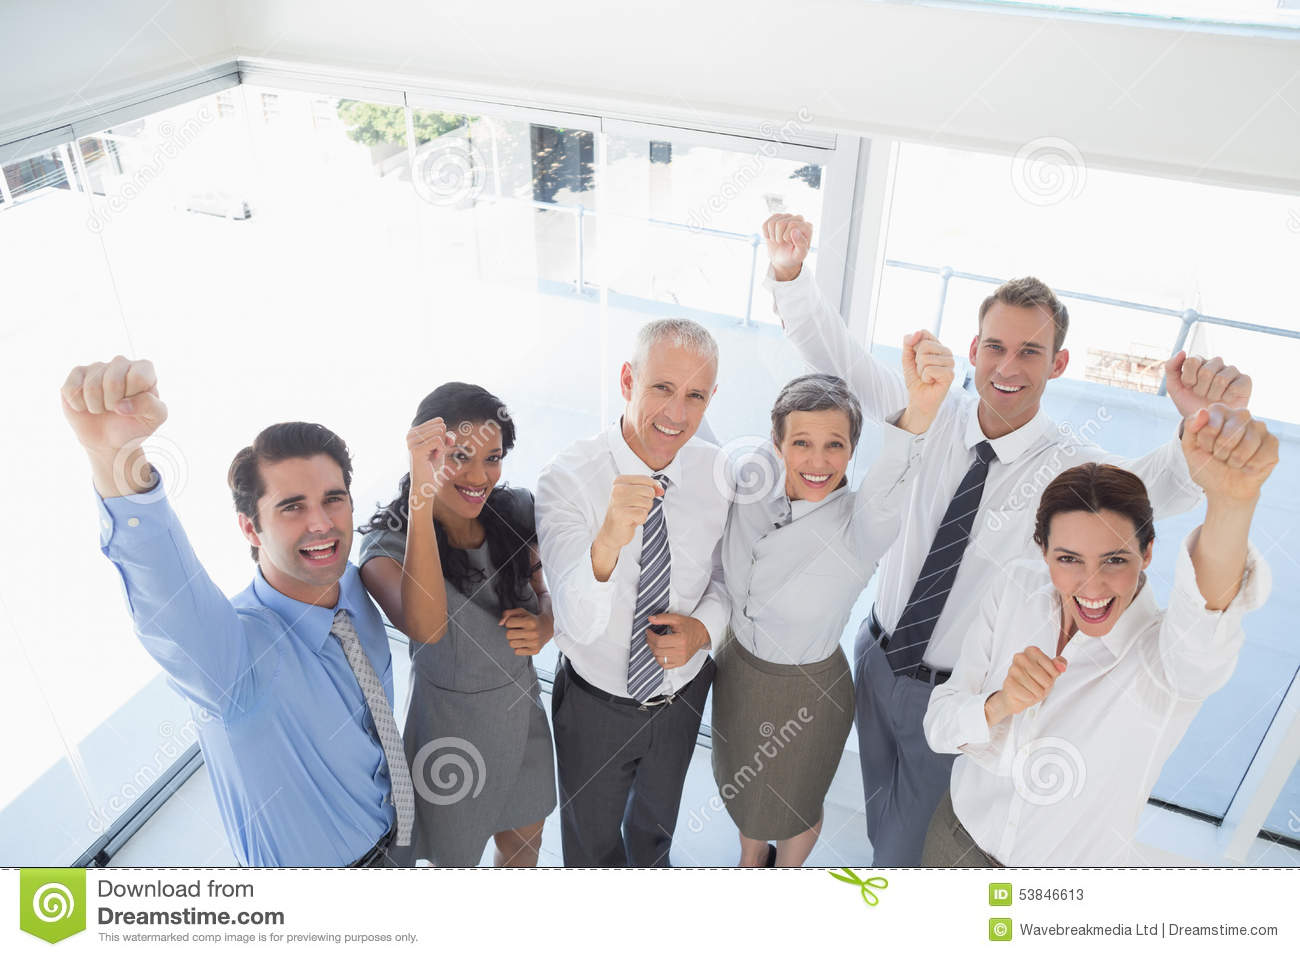 successful business team Download 100,665 successful business team stock photos for free or amazingly low rates new users enjoy 60% off 87,283,390 stock photos online.